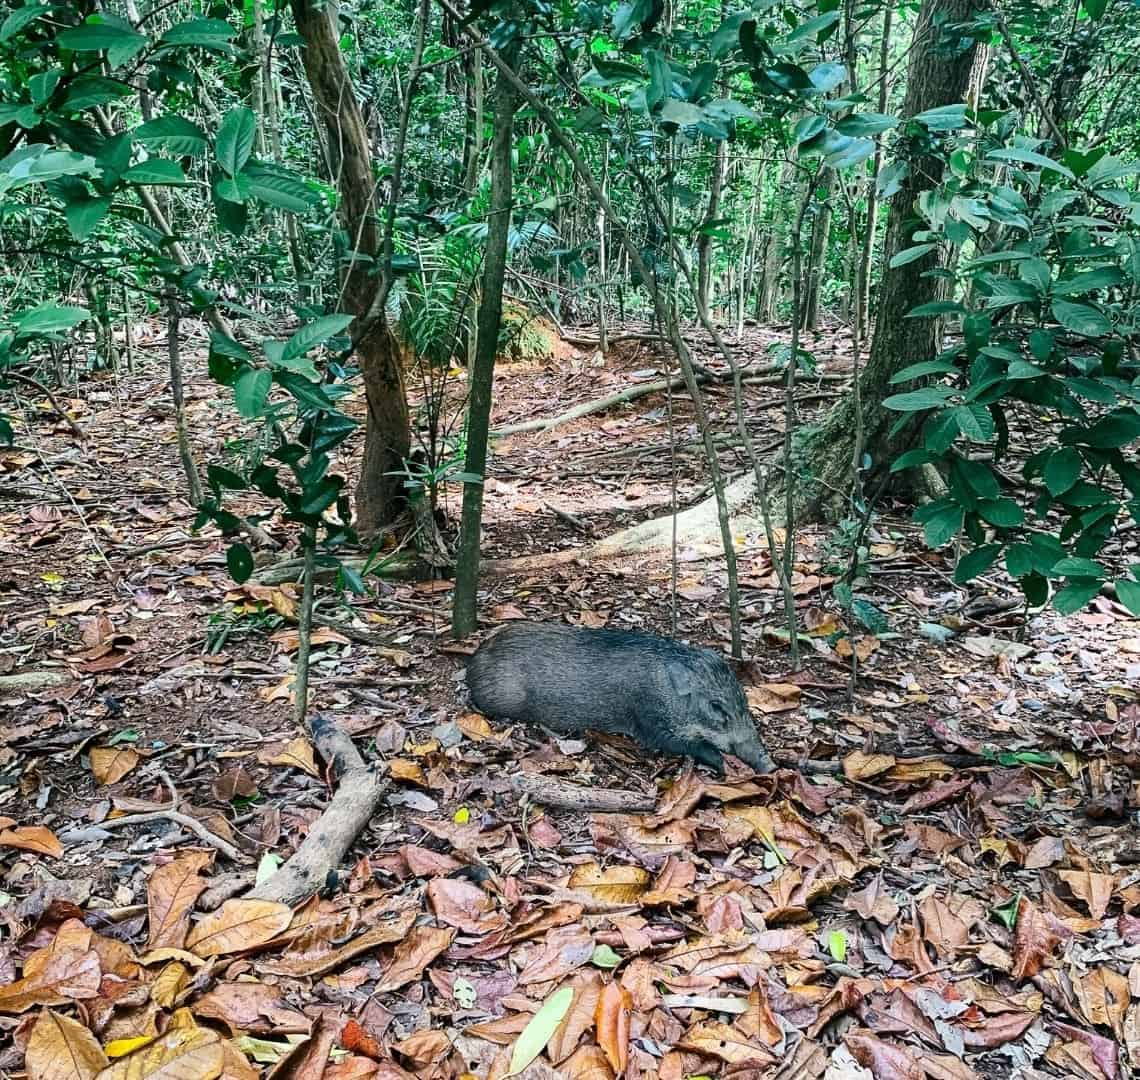 A wild boar is in teh middle of the image. It is lying down on a floor of fallen leaves that are vary-ious shades of brown and yellow. there are several shrubs and trees around.